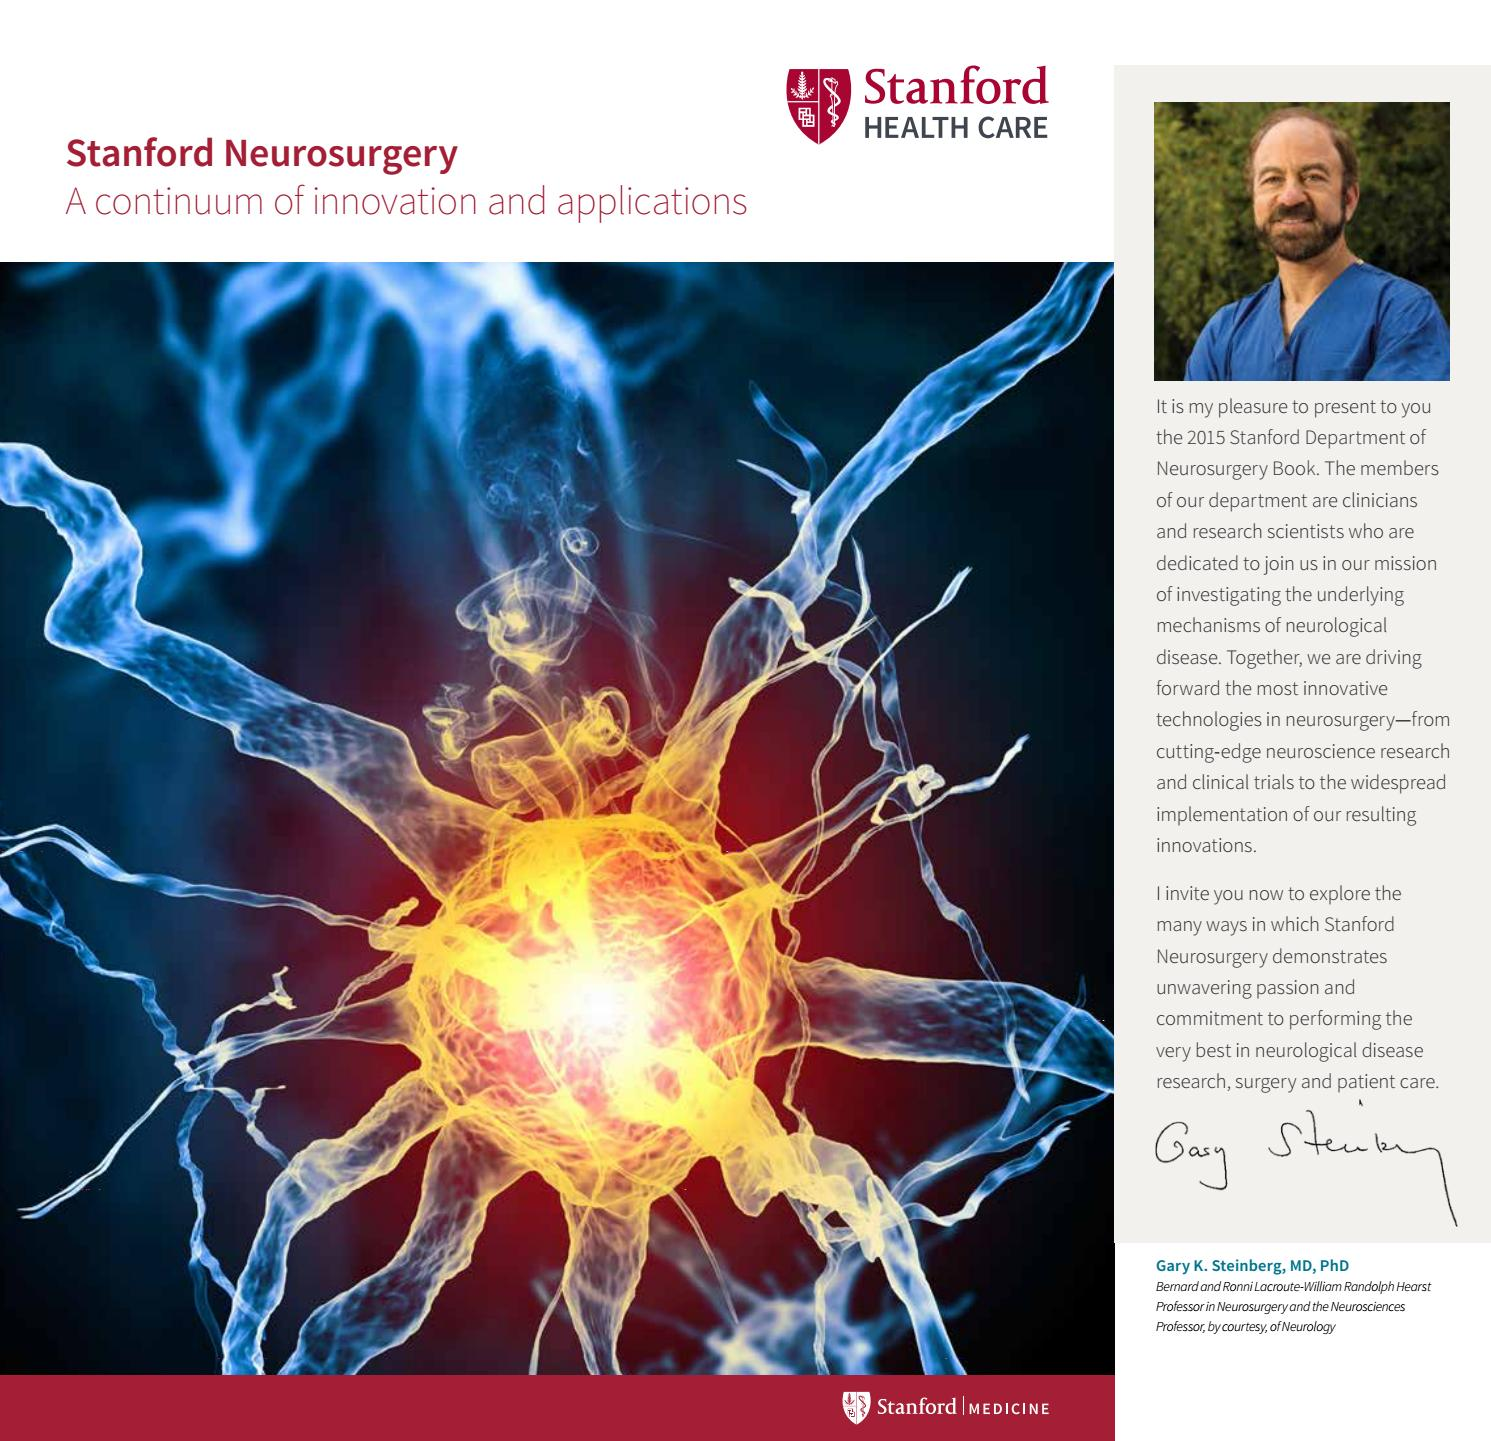 Stanford Neurosurgery by Stanford Health Care - issuu